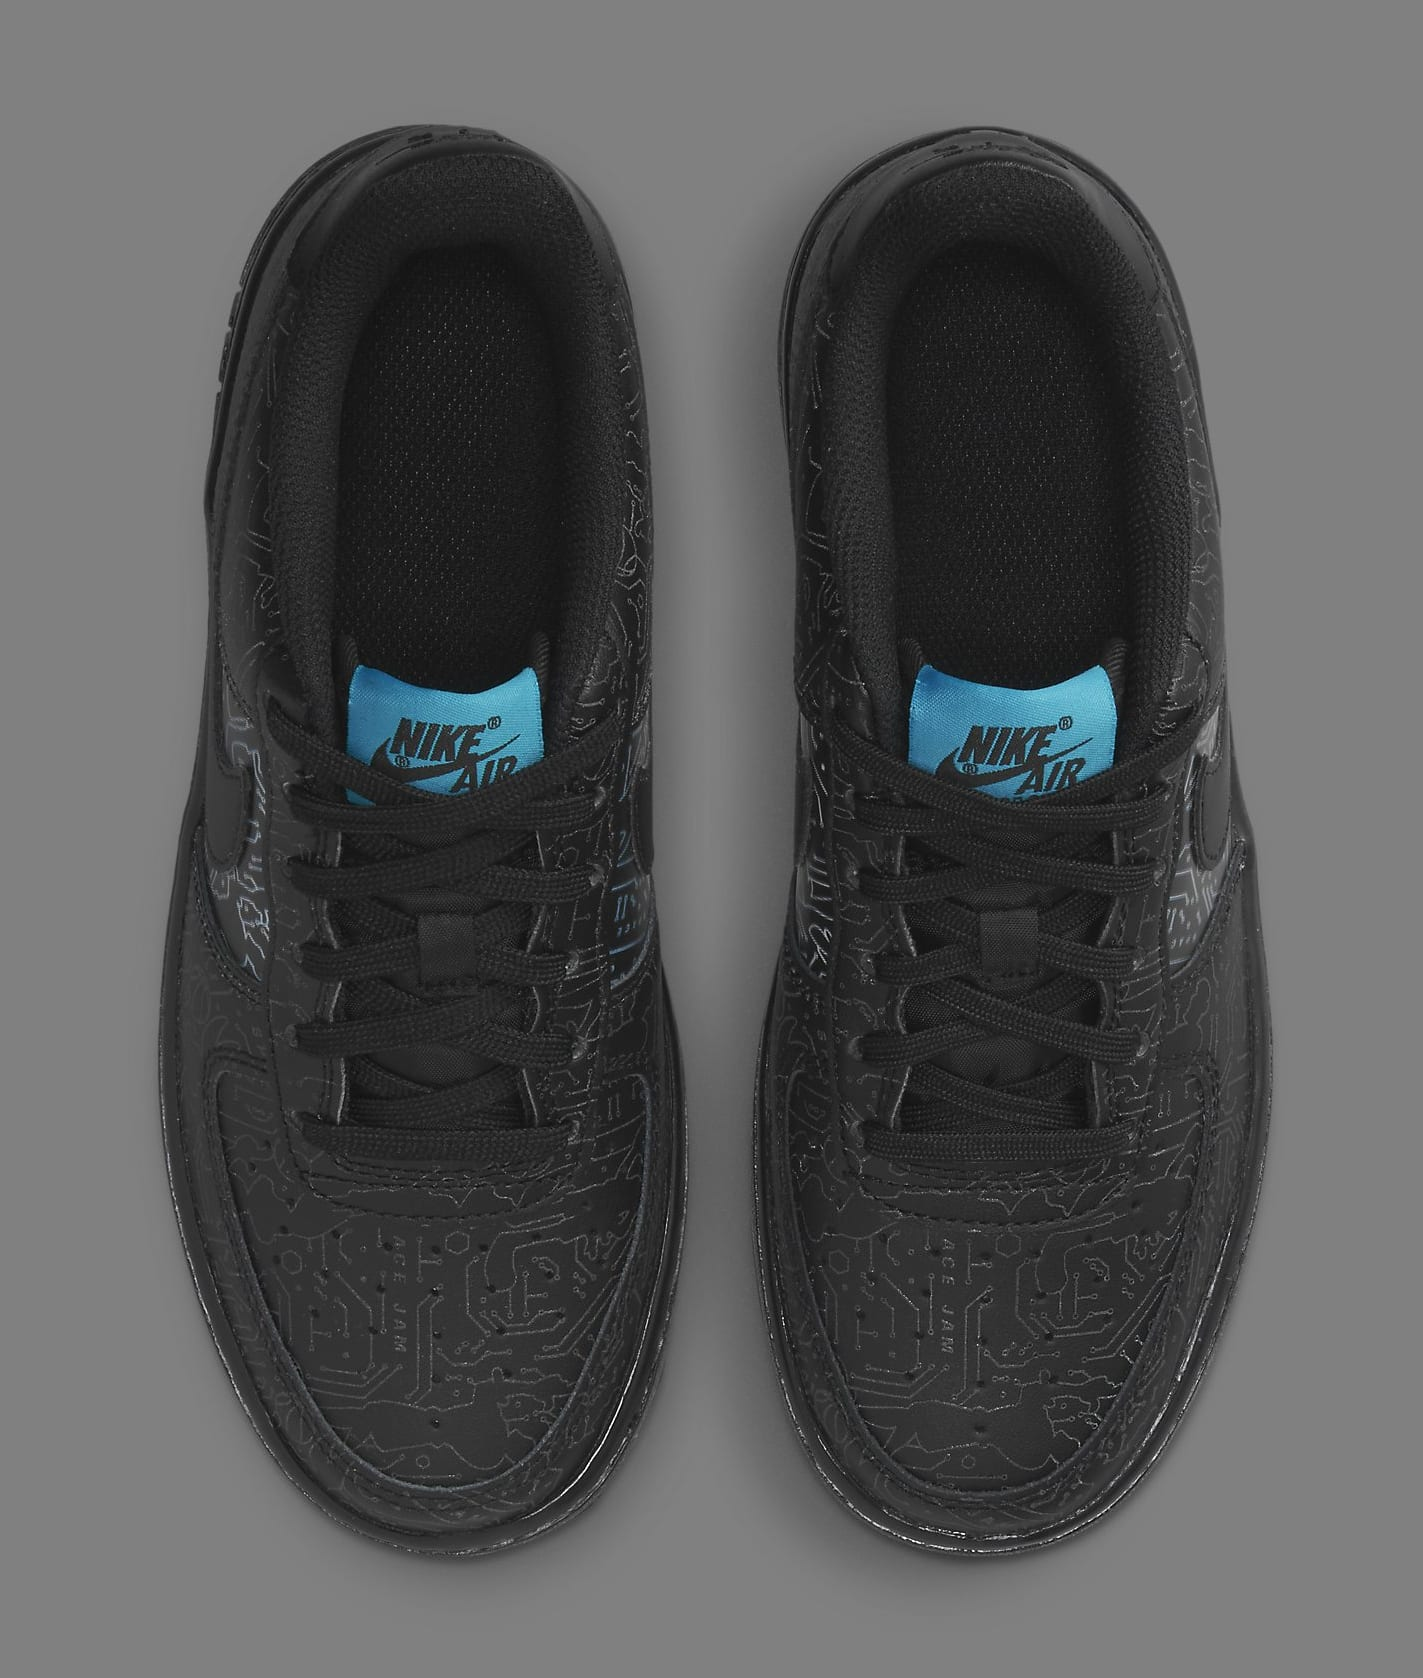 Nike Air Force 1 Low GS 'Space Jam' DN1434-001 Top